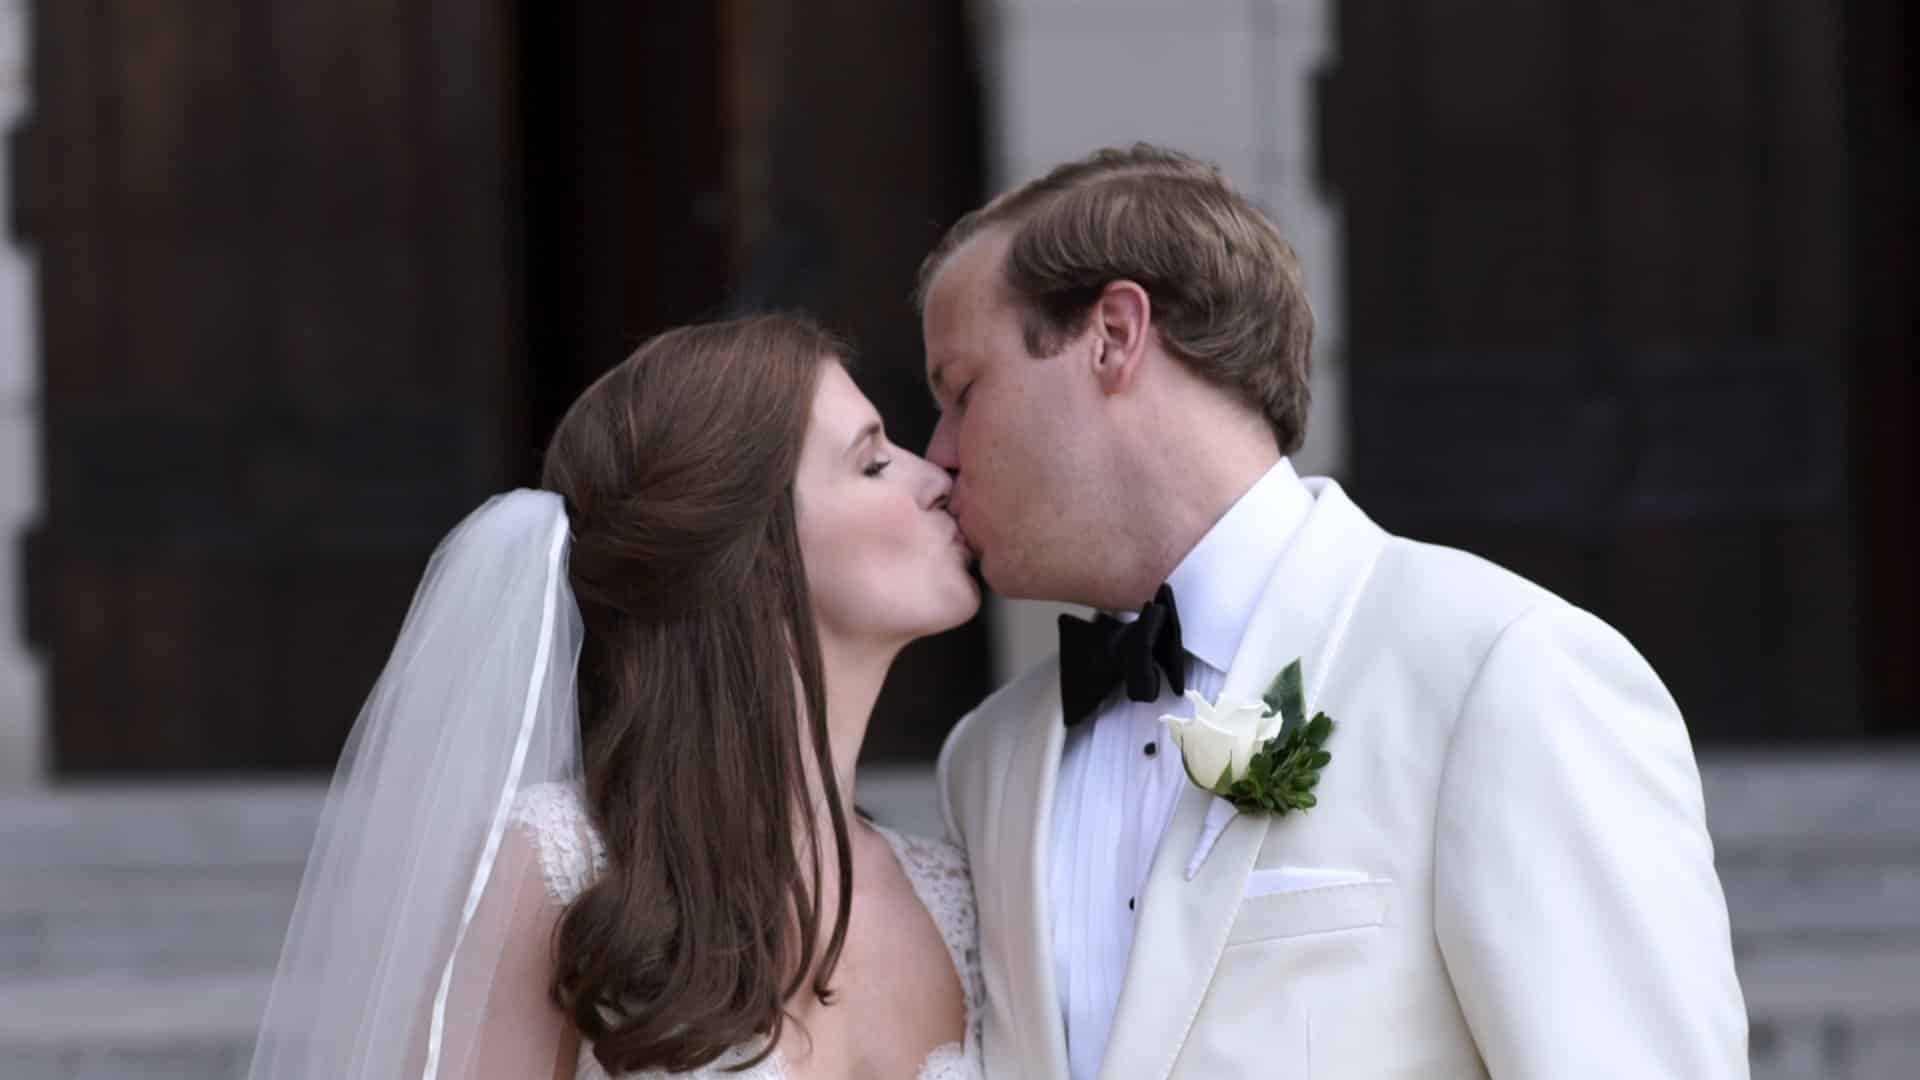 Mary Catherine + Michael Highlight Film